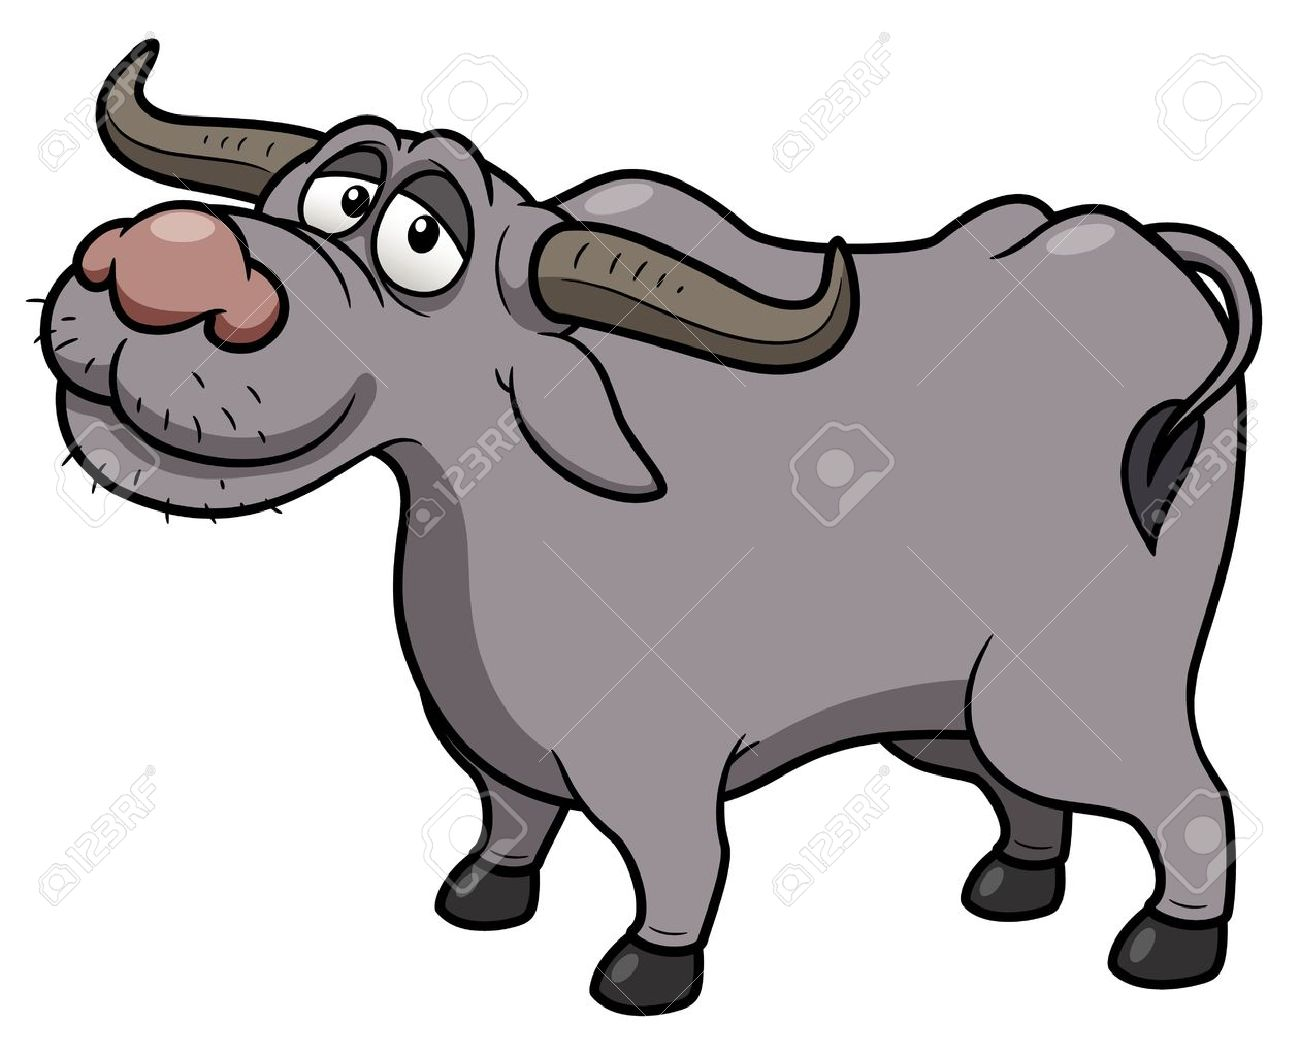 Water Buffalo clipart #15, Download drawings